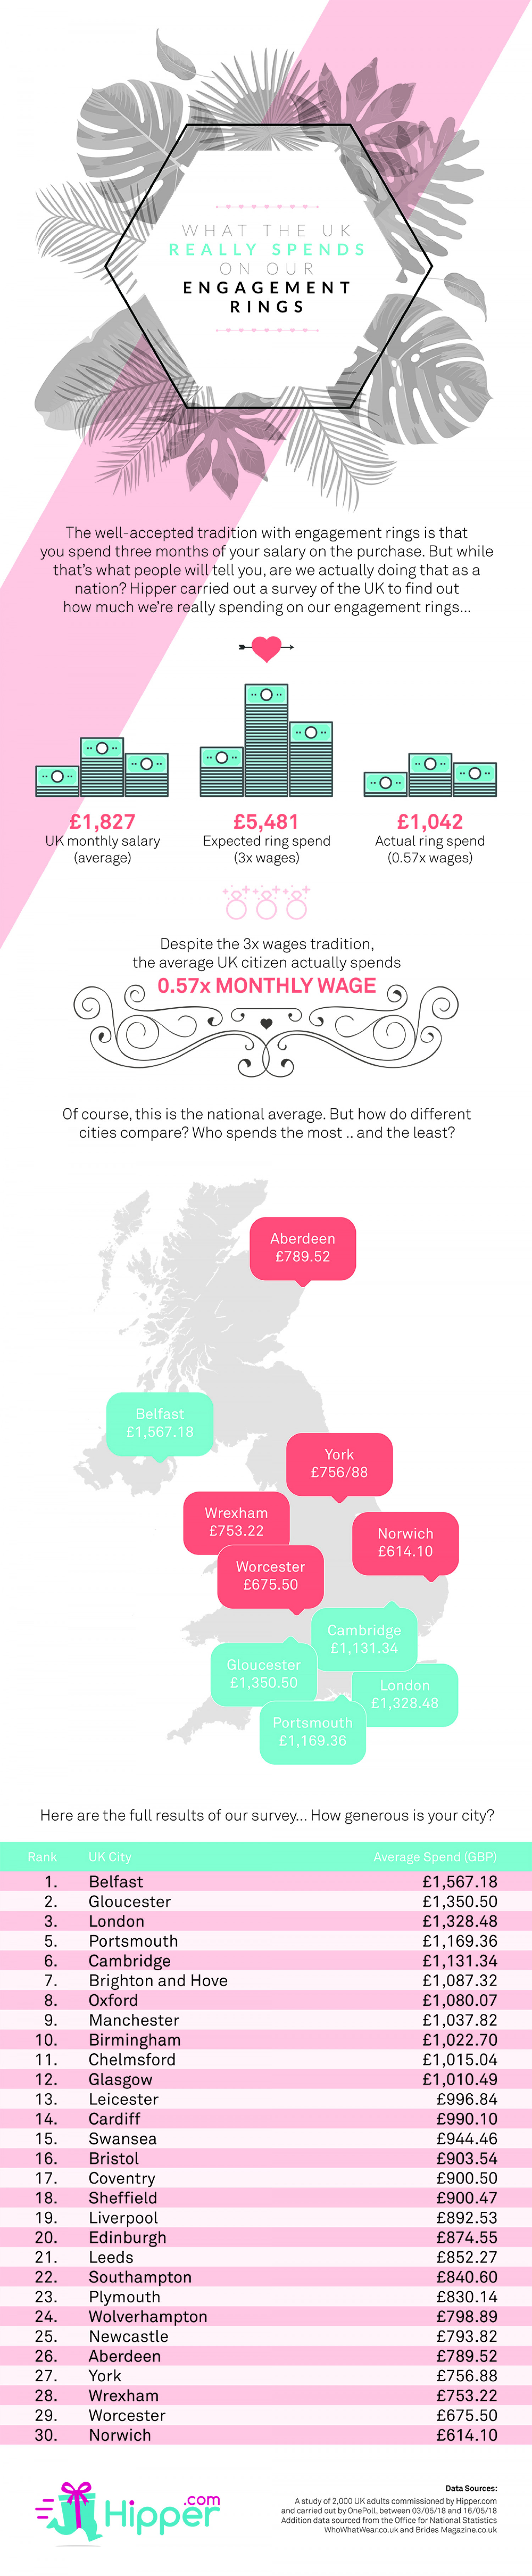 What Does The UK Really Spend On An Engagement Ring?  Infographic